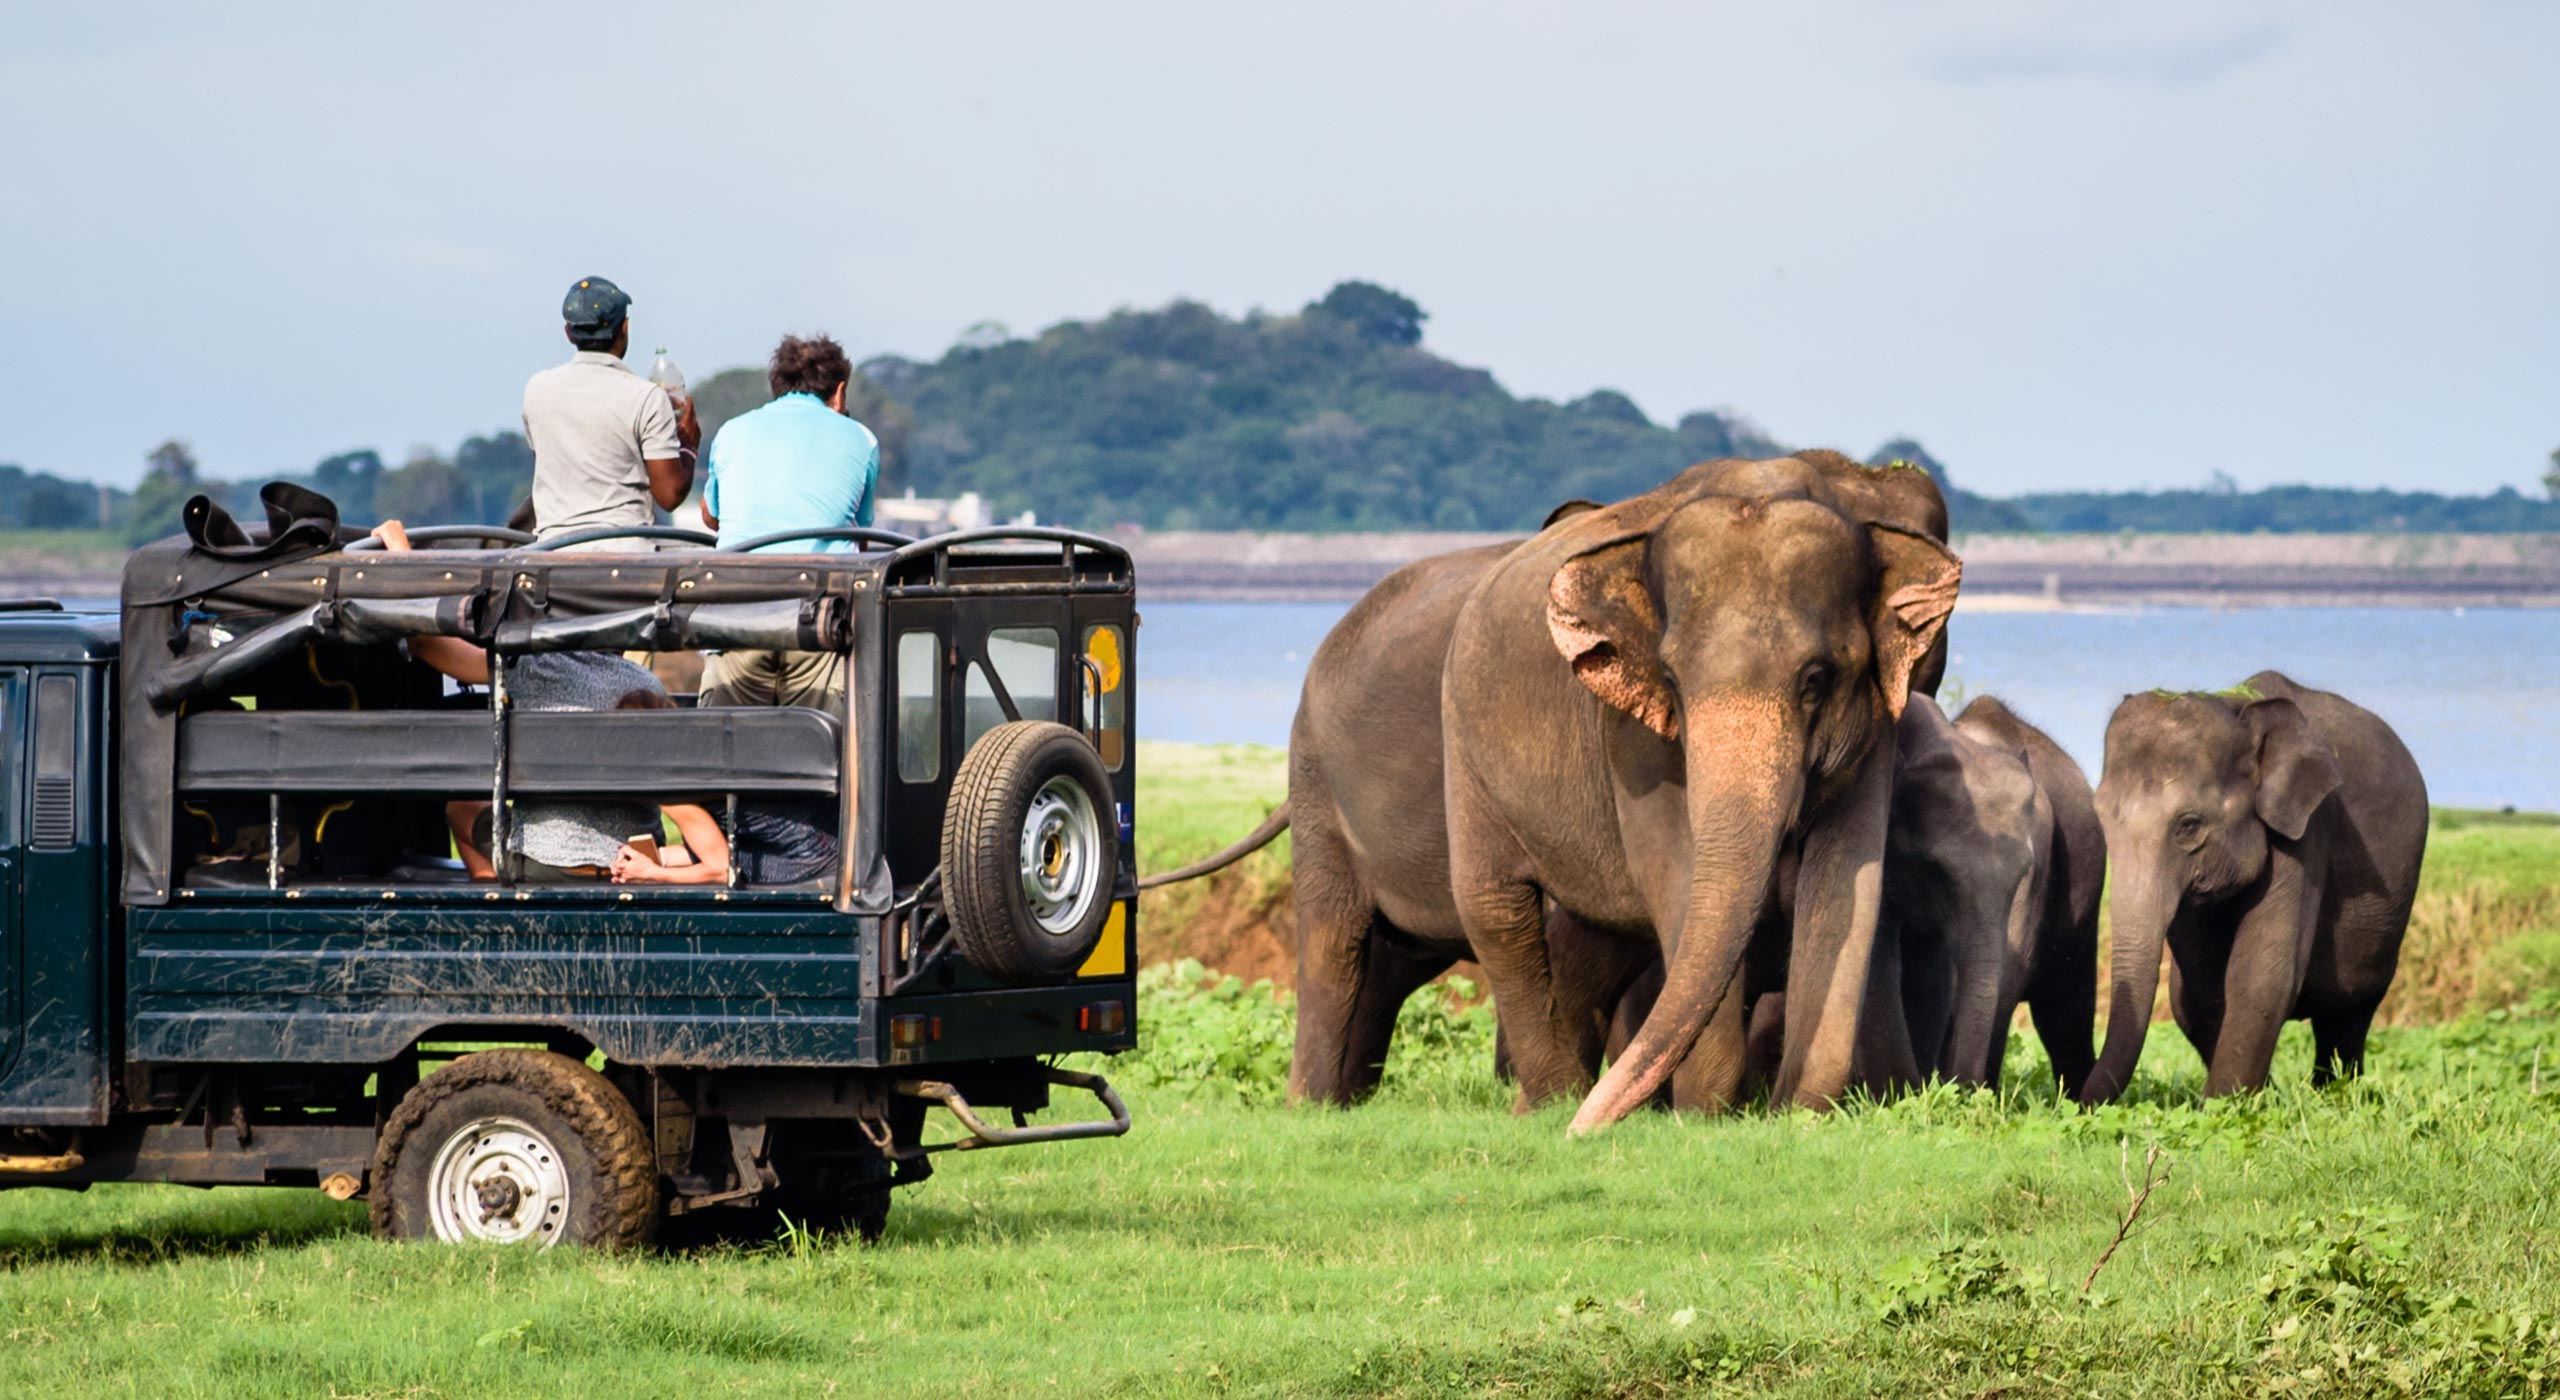 Yala National Park, The Surfer - The best surfing and yoga retreat in Sri Lanka and South Asia.